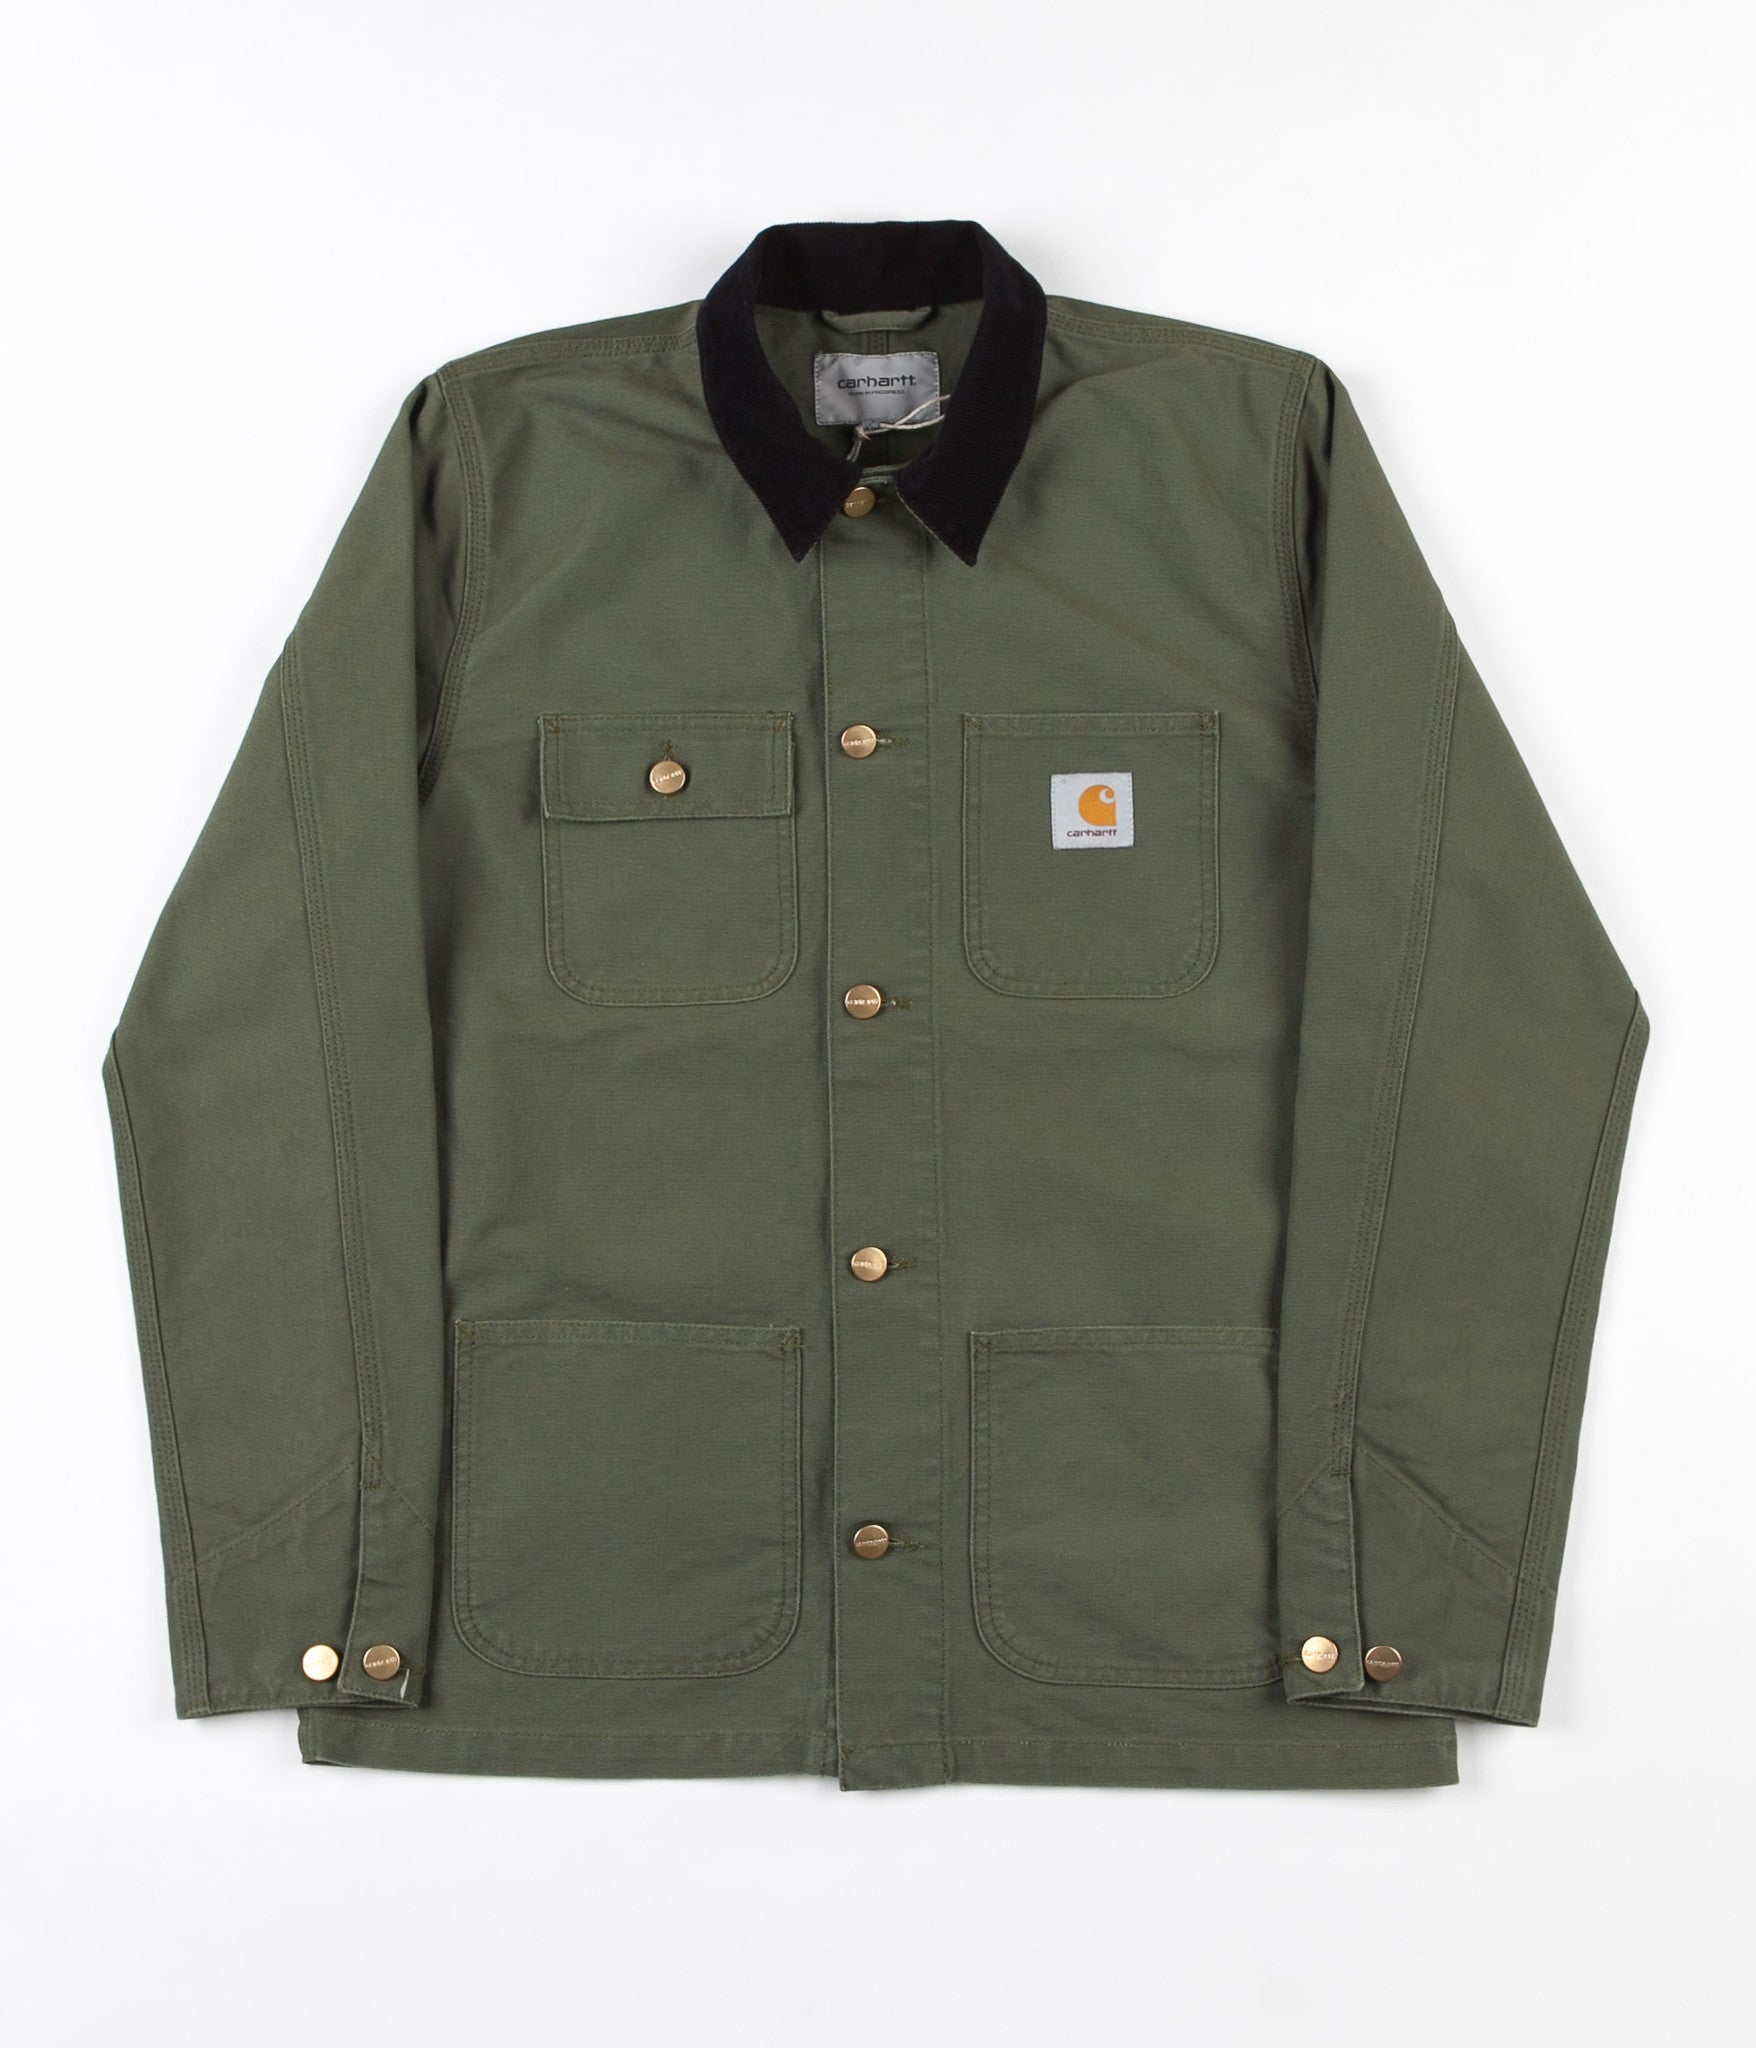 Carhartt Michigan Chore Coat - Rover Green / Black